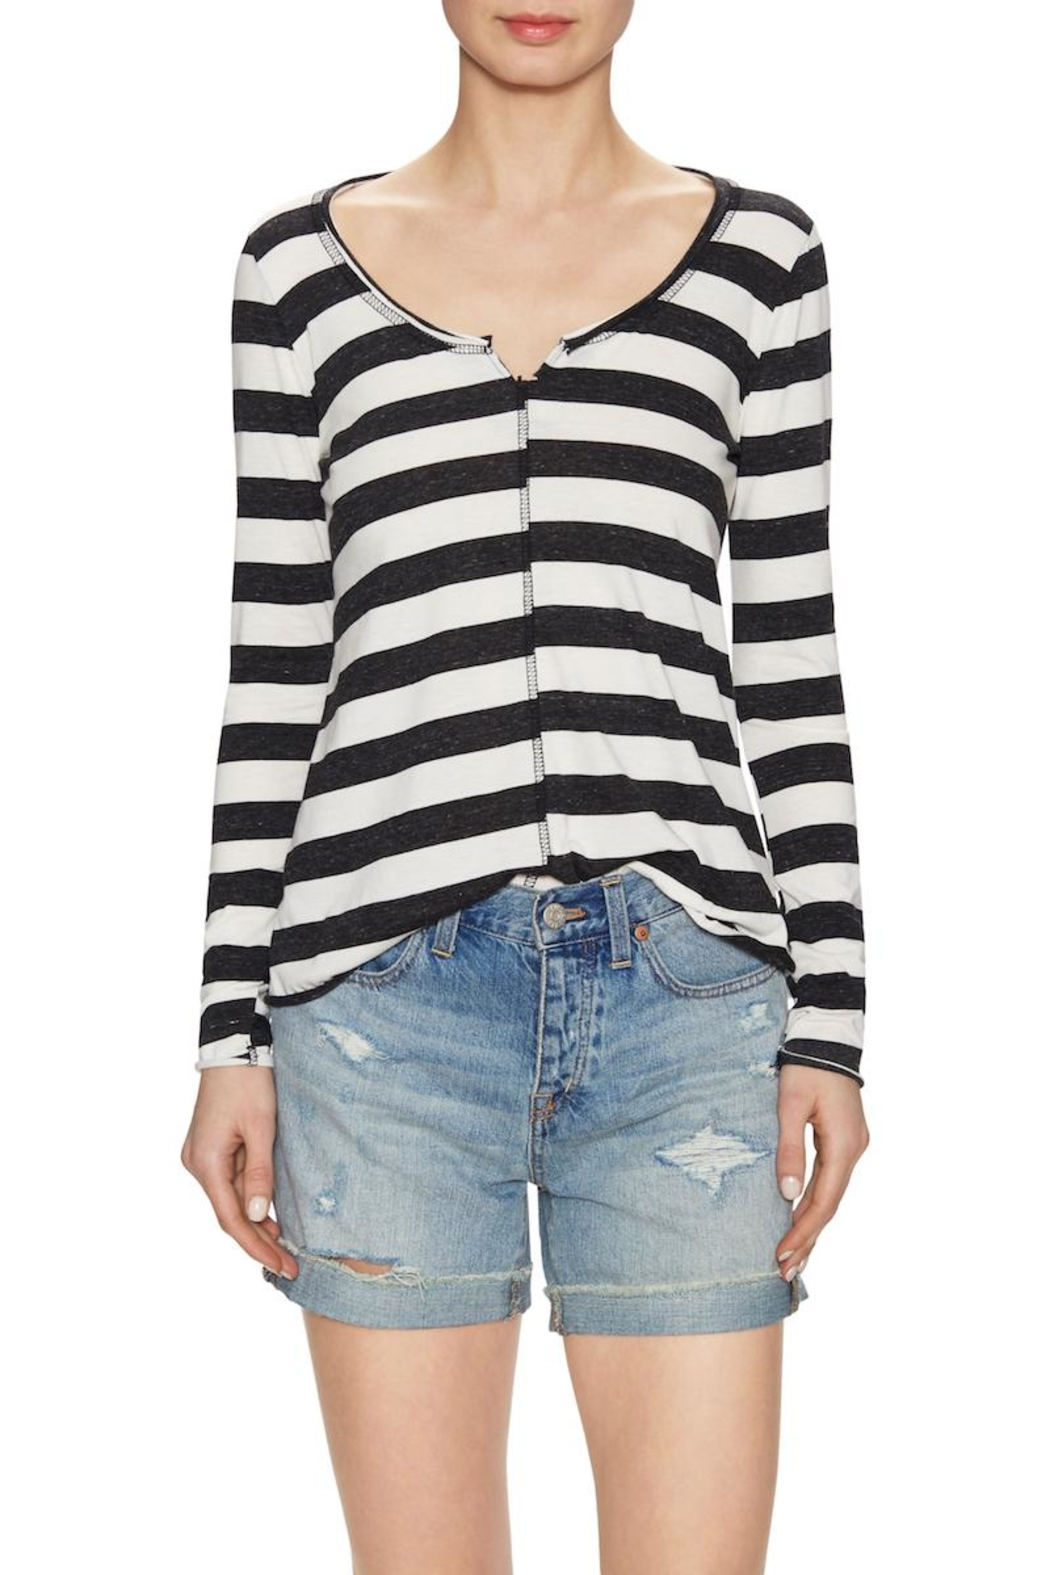 NYTT Striped Top - Main Image